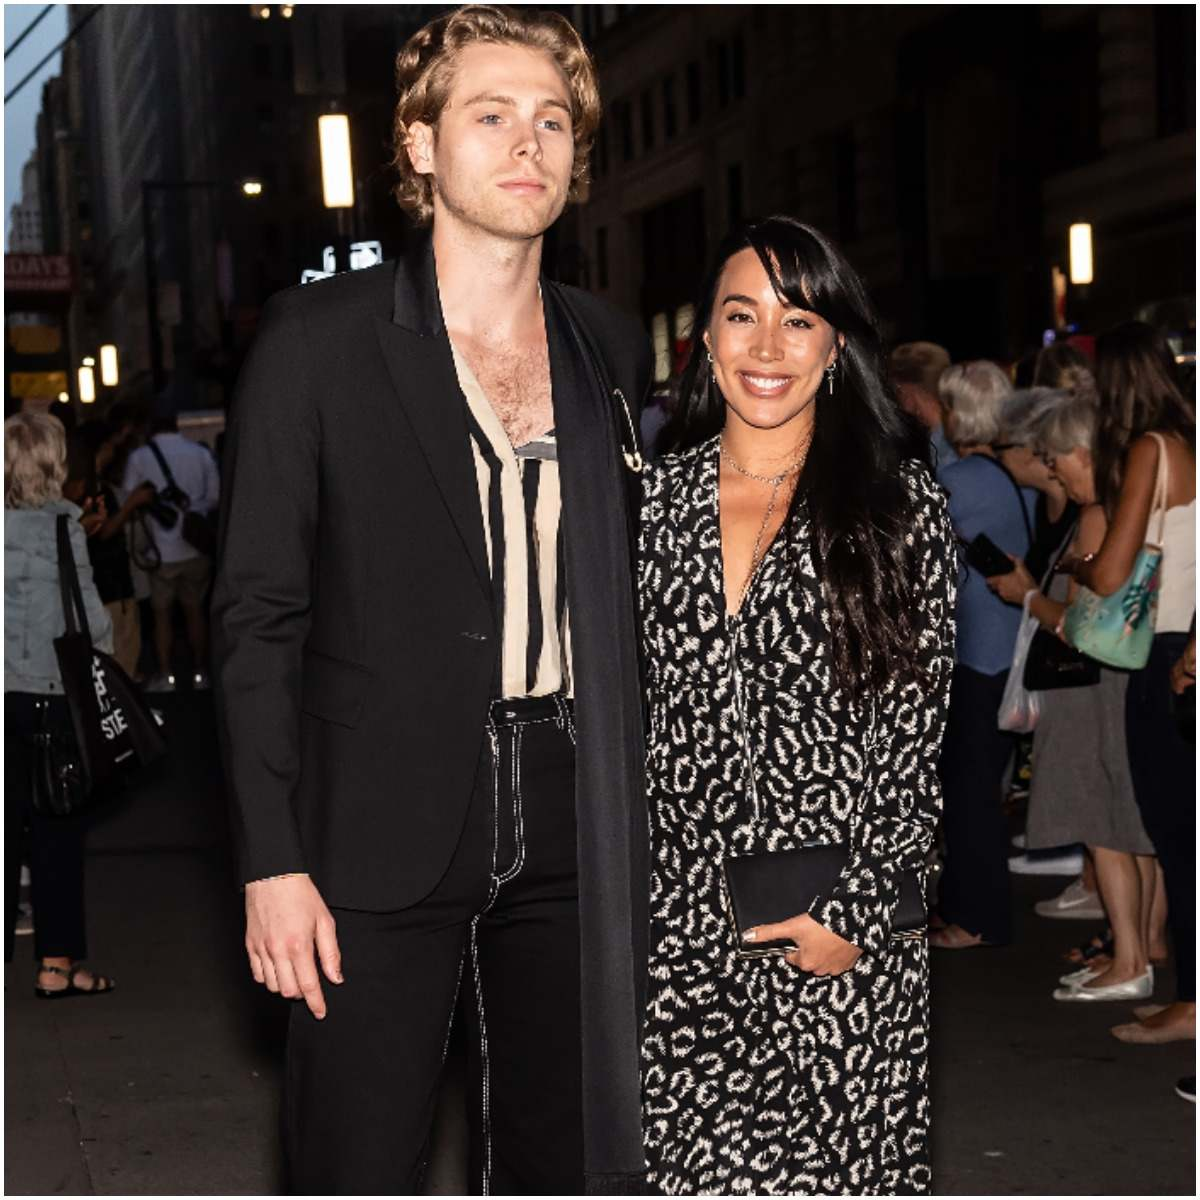 Sierra Deaton with her boyfriend Luke Hemmings